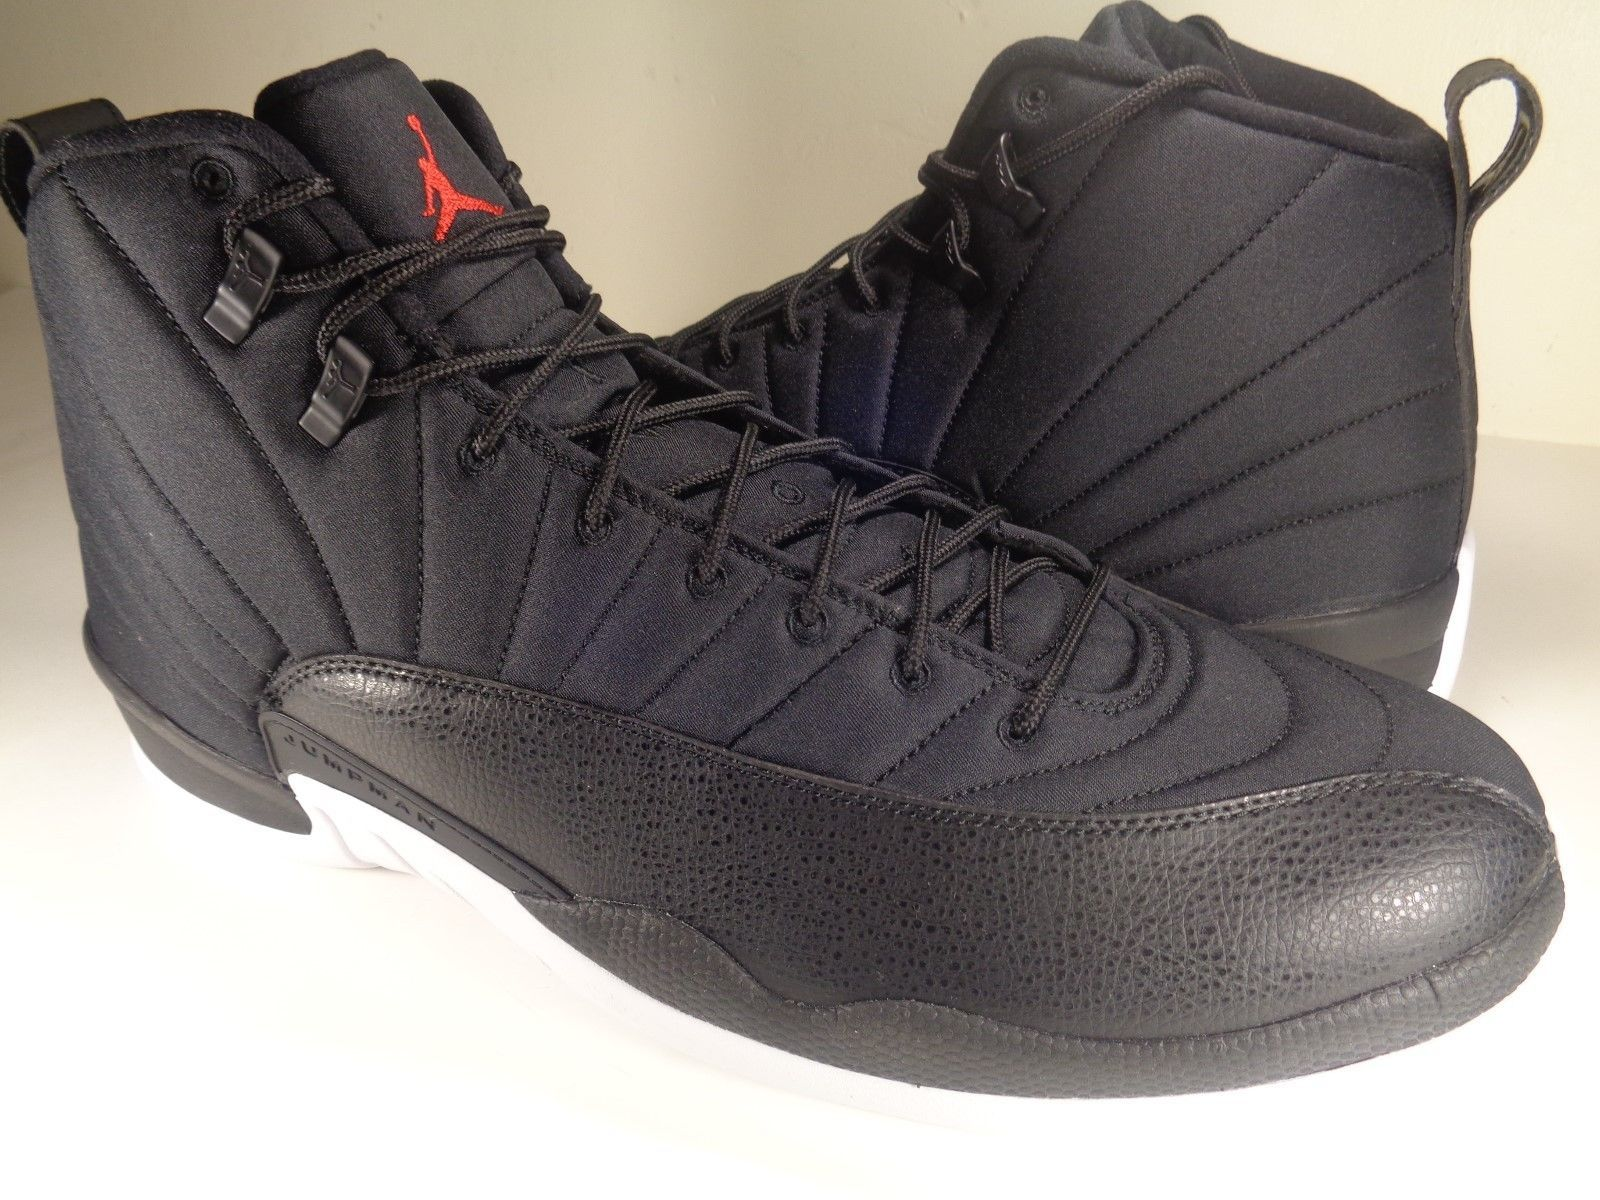 Nike Air Jordan 12 XII Retro Black Nylon Neoprene Red White SZ 15 (130690-